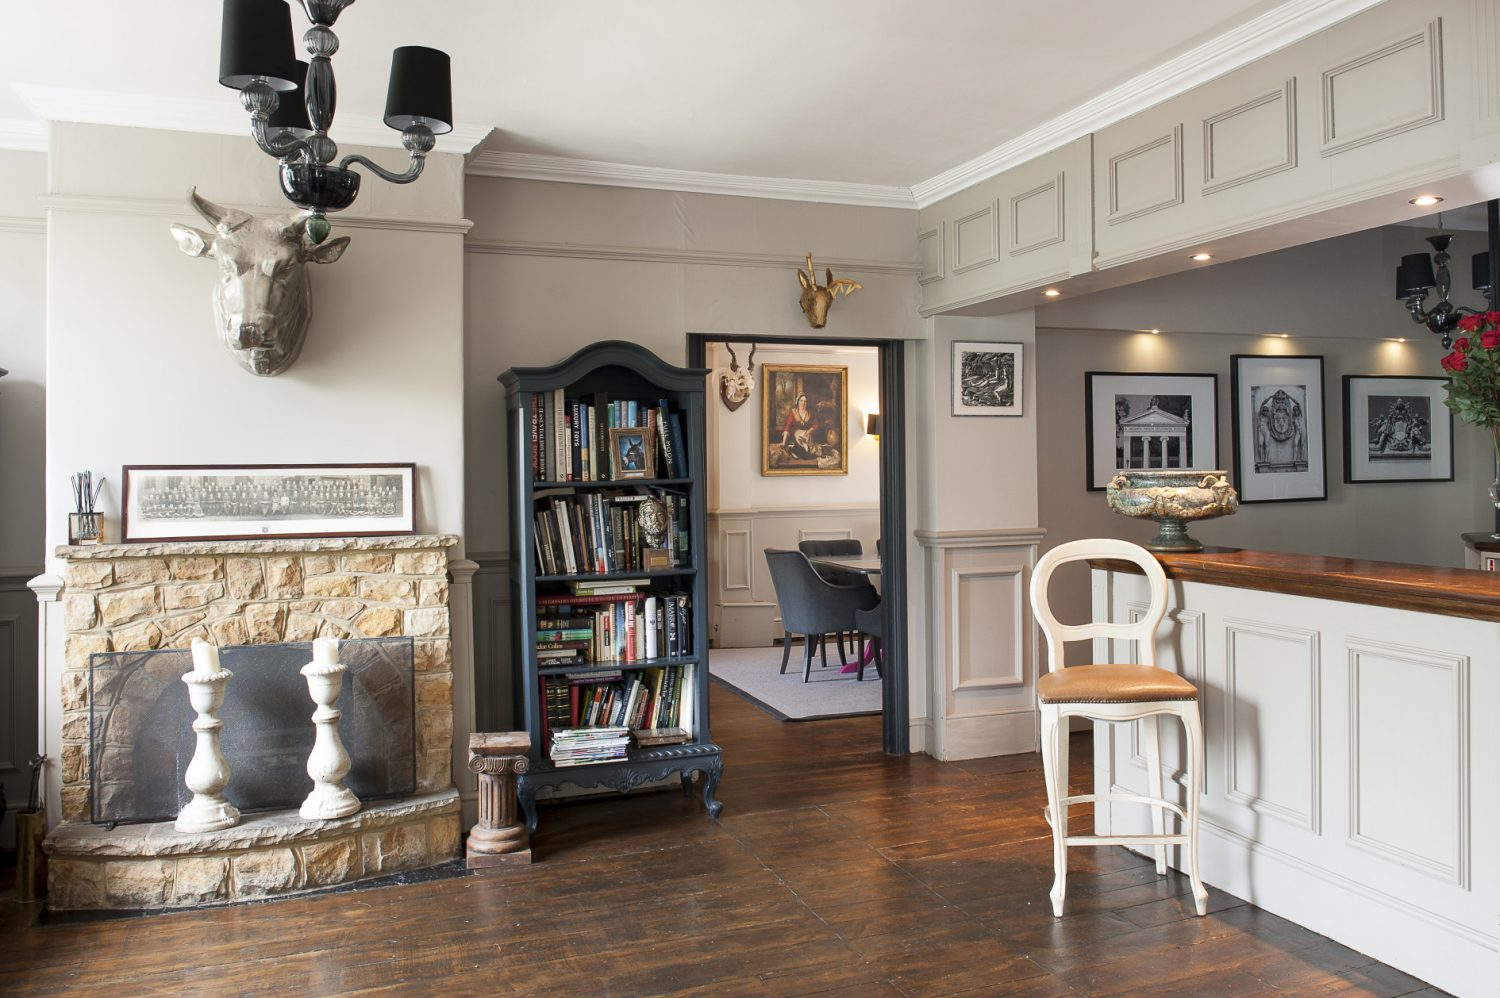 The entrance hall still contains an impressive timber-topped bar – perfect for when the couple are entertaining